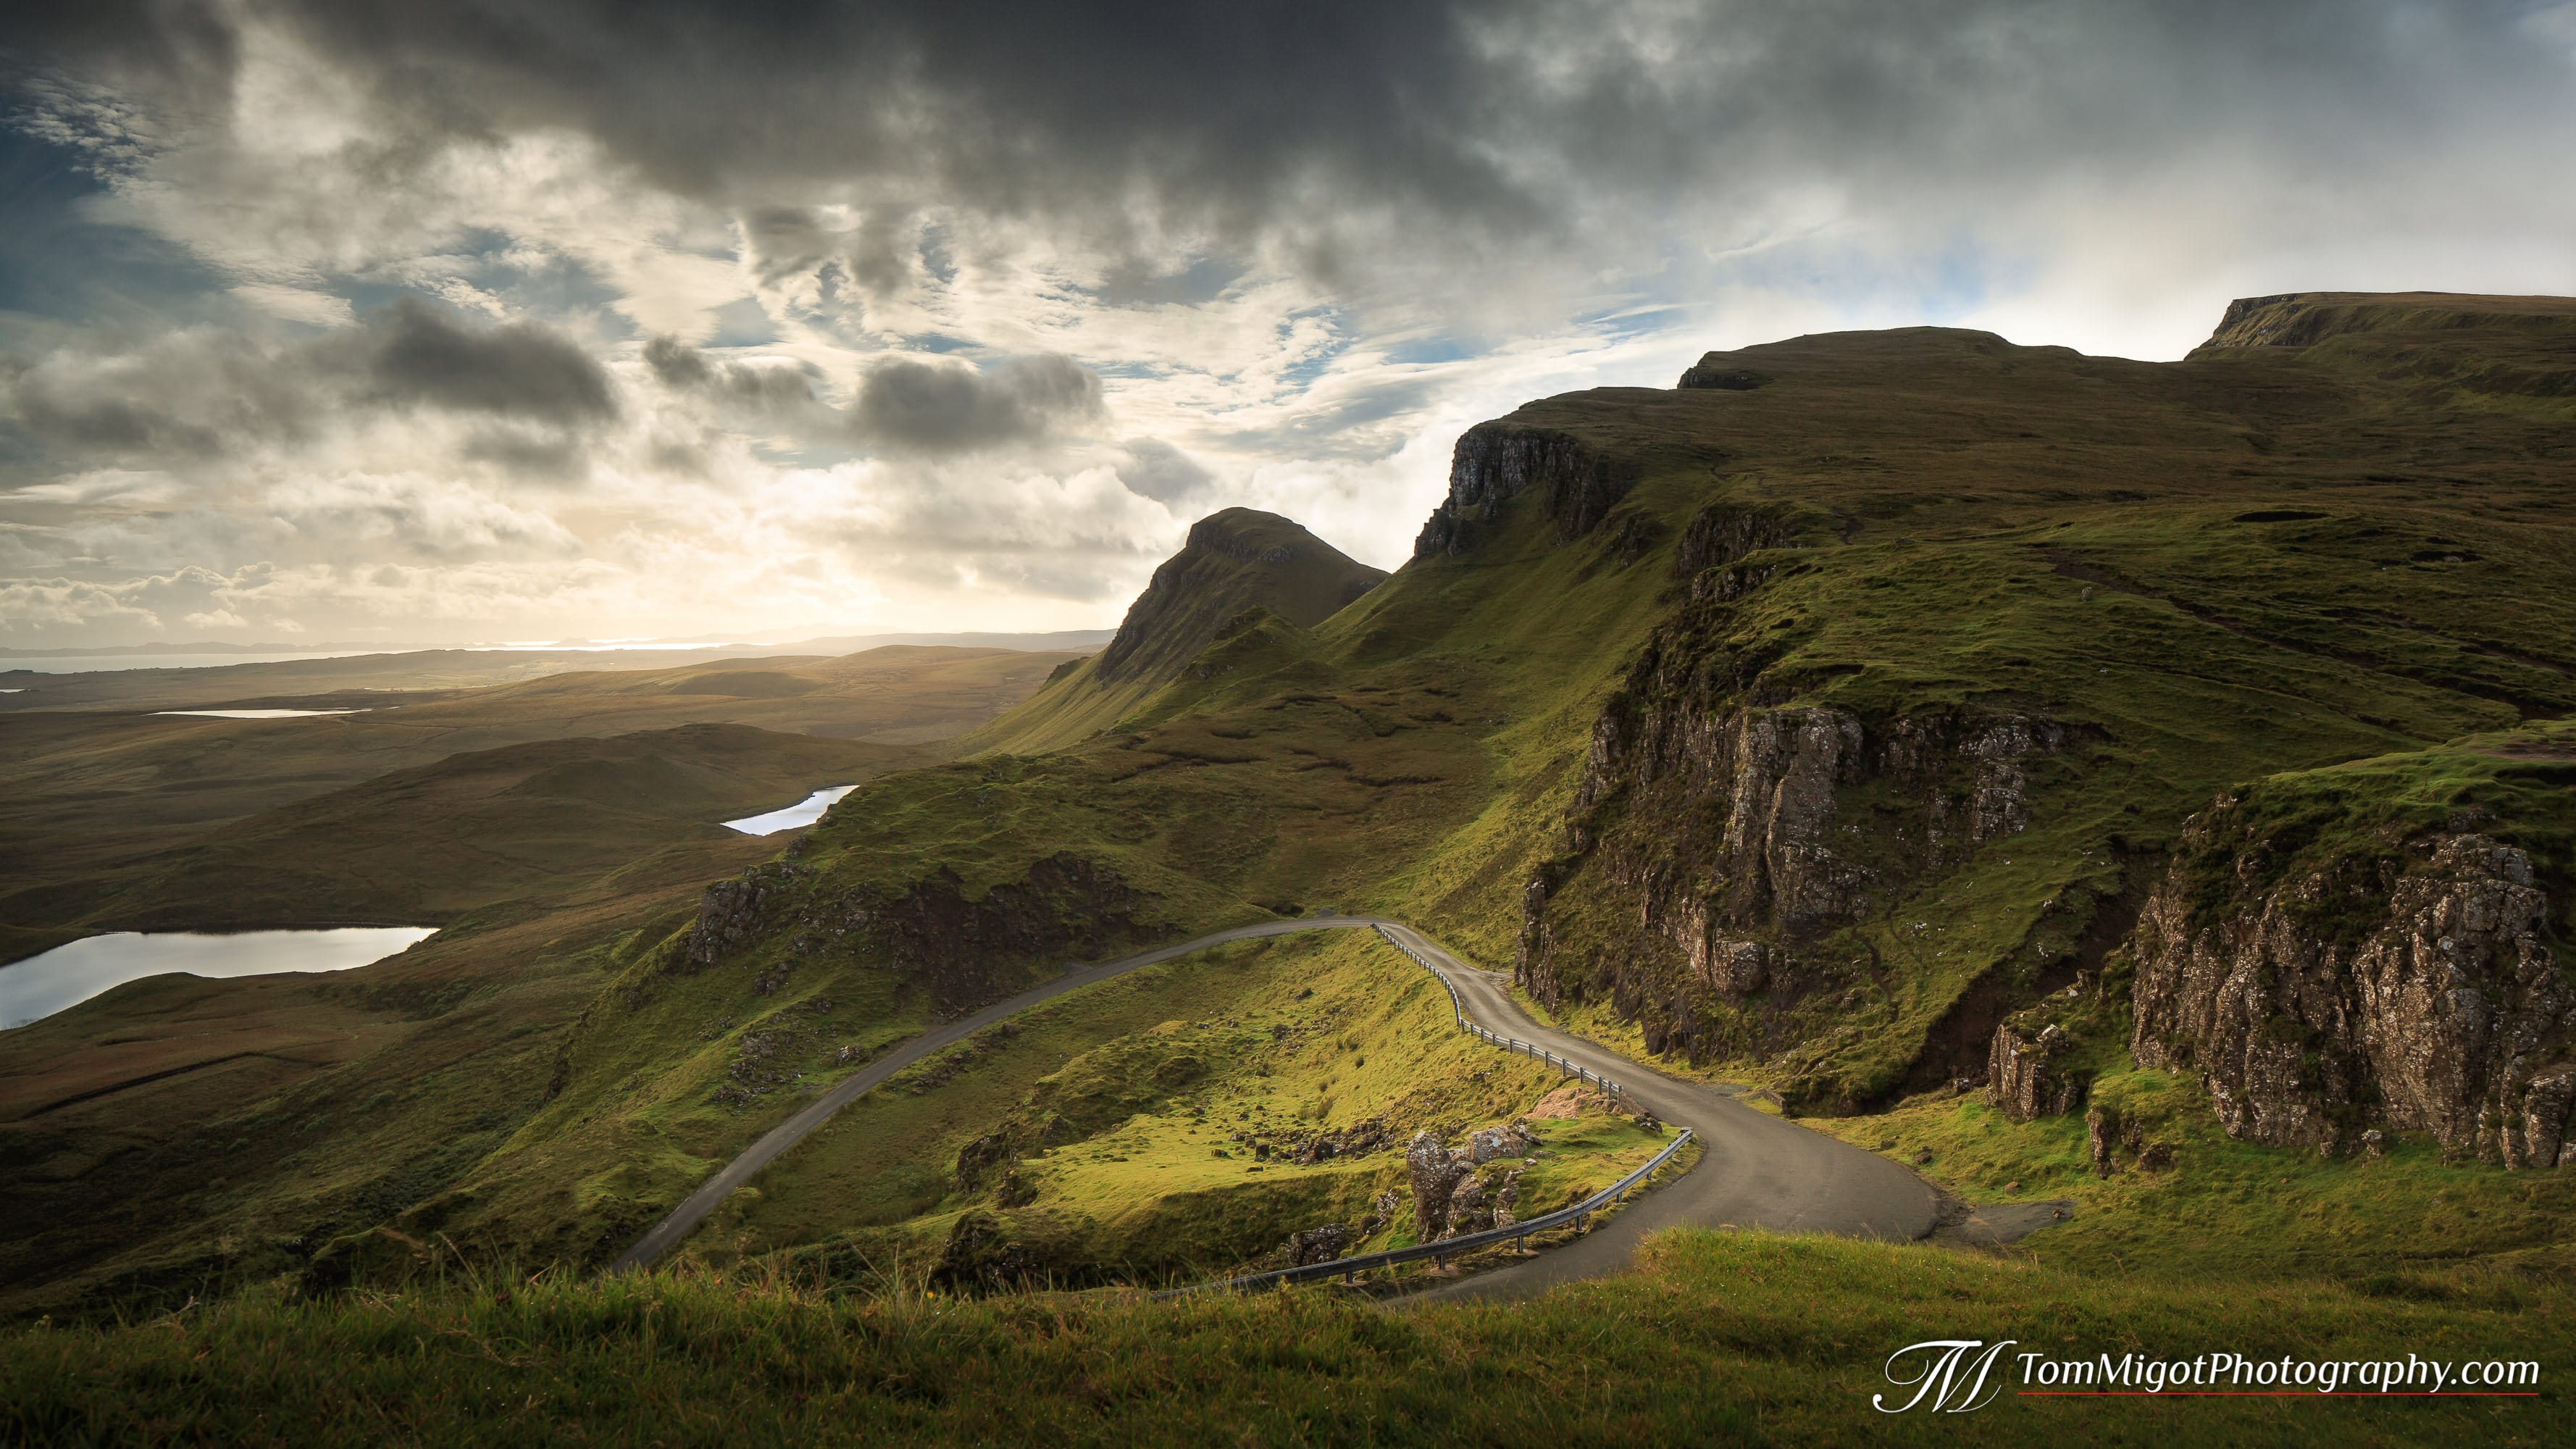 Heart of the Quiraing on the Isle of Skye in Scotland